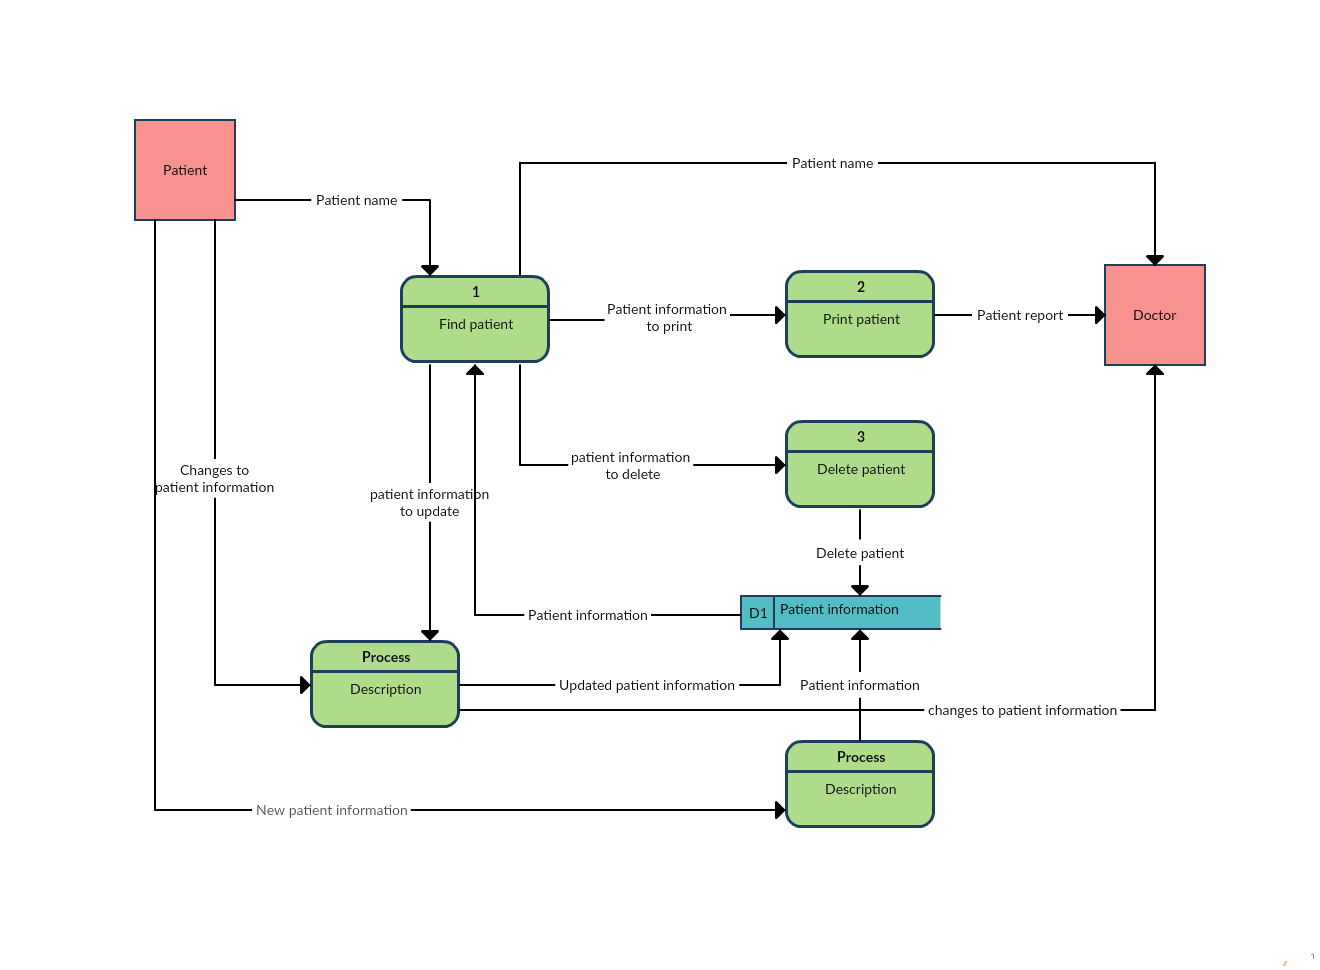 Data flow diagram templates to map data flows creately blog data flow diagram template of a patient information system ccuart Gallery